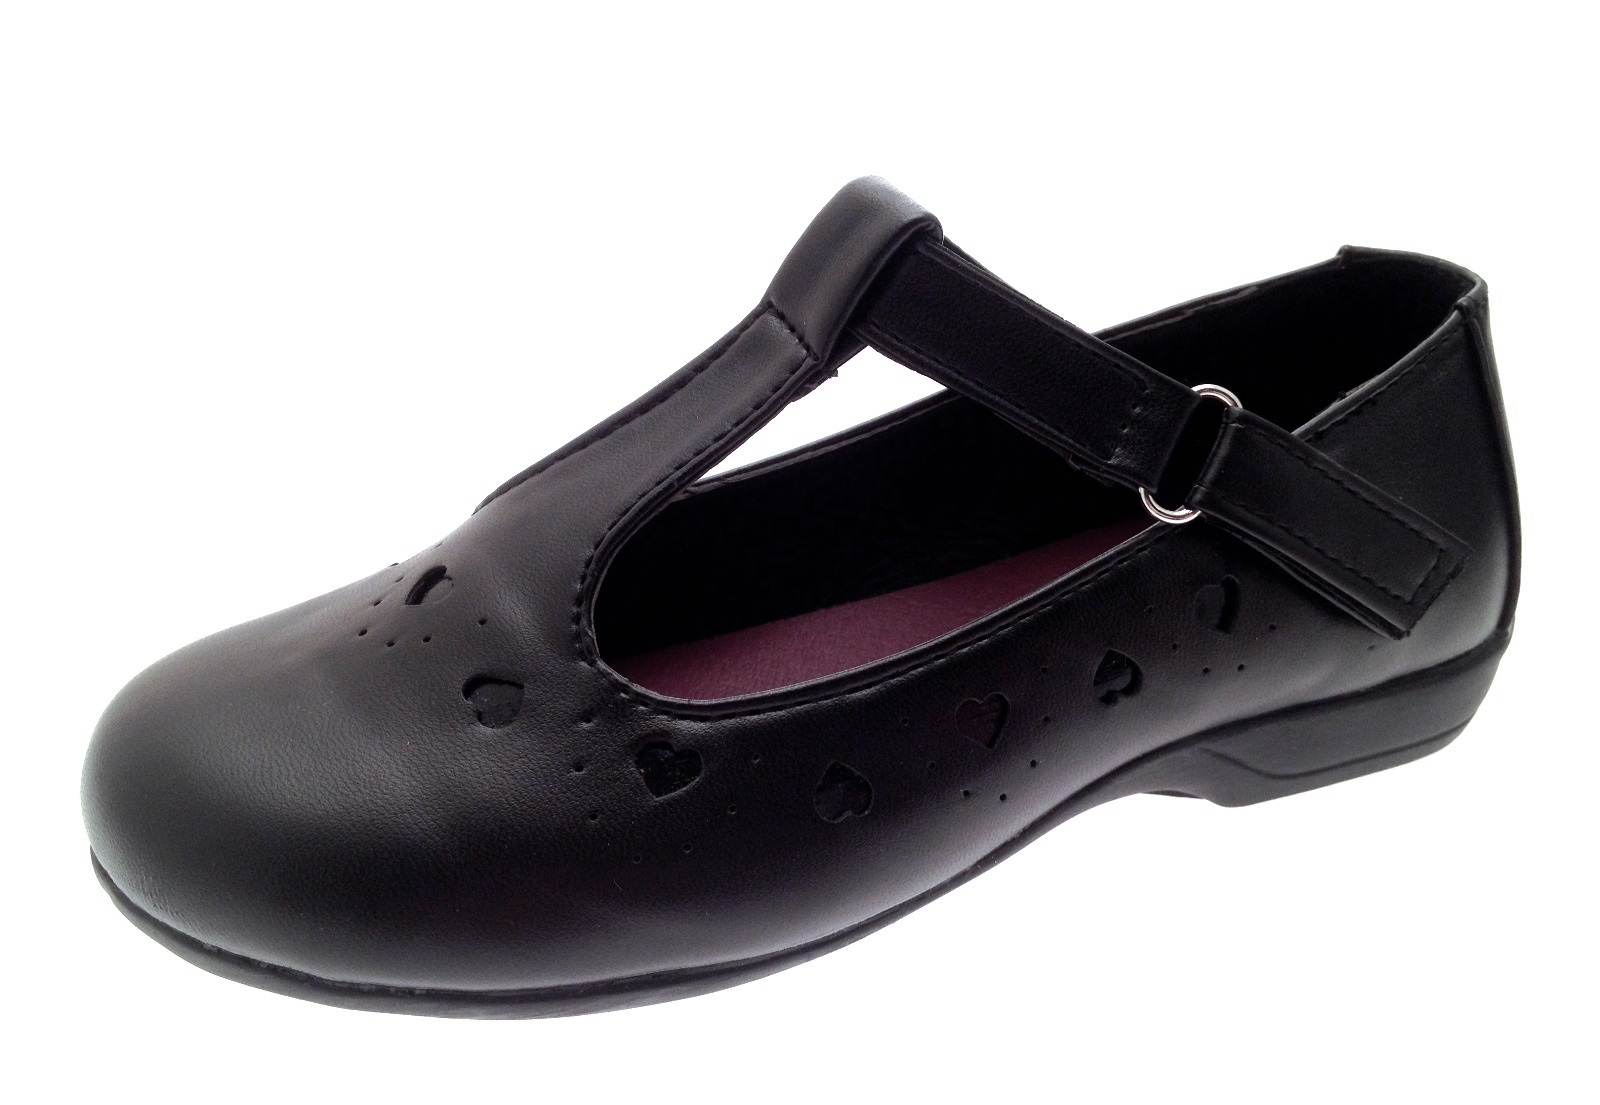 The girls' dress shoes collection from Belk features a variety of styles both you and she will love, like ballet flats, Mary Janes, dressy sandals and party shoes. Available in newborn, baby, toddler and youth sizes, you can find the perfect pair for your little girl with options in wide, medium and narrow fits.